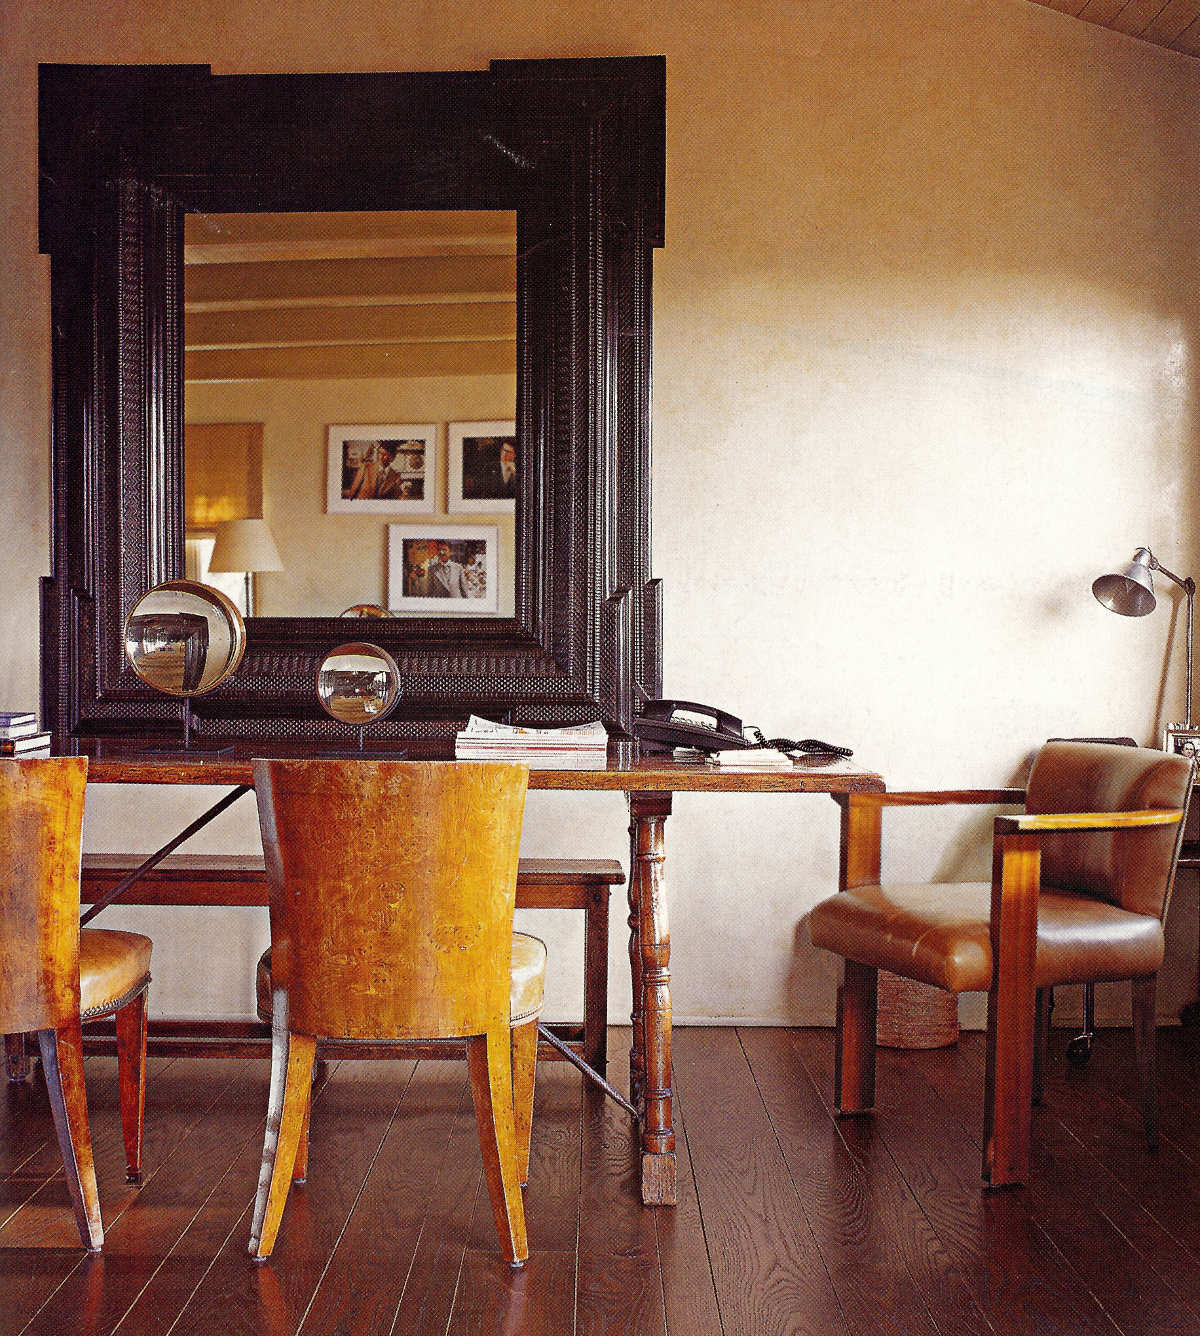 hollywood style - antique table and chairs in the work space of an LA house decorated by Michael S. Smith - H&G via Atticmag